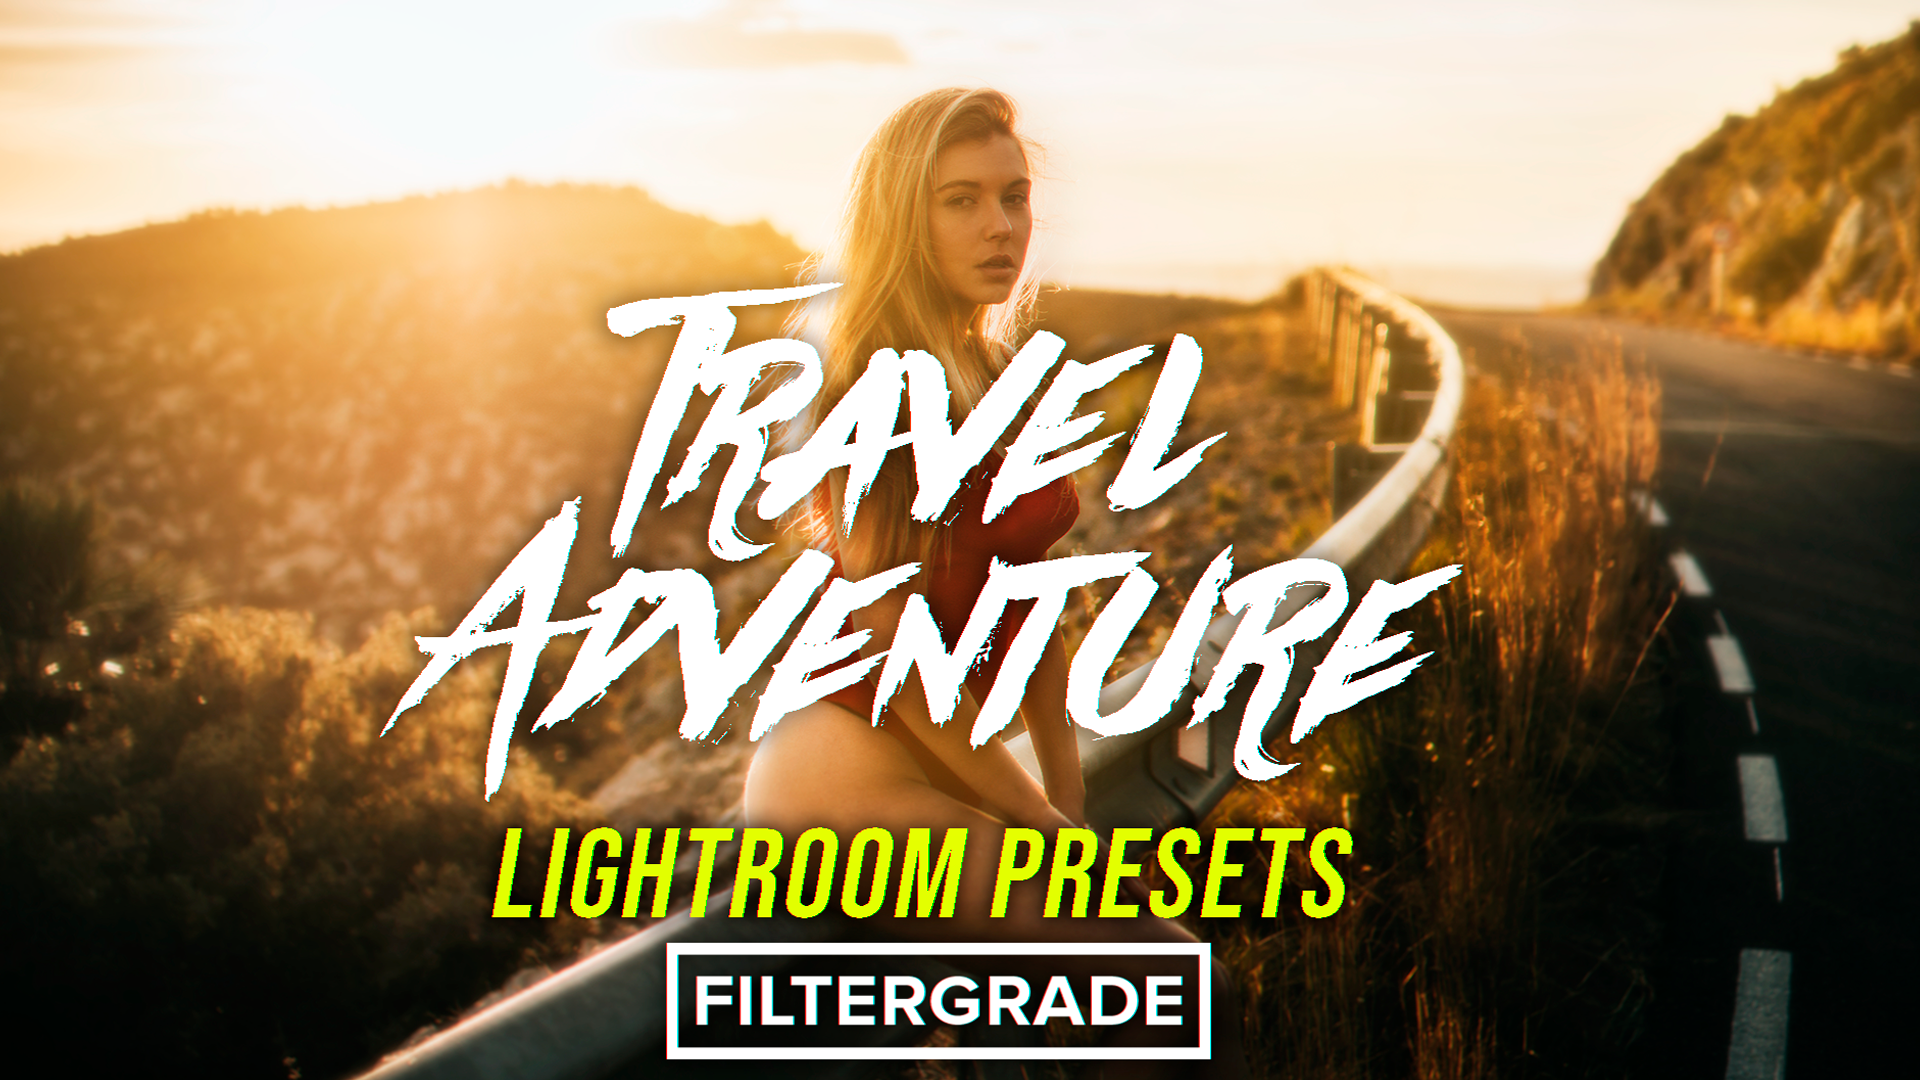 Joan Slye Travel Adventure Lightroom Presets